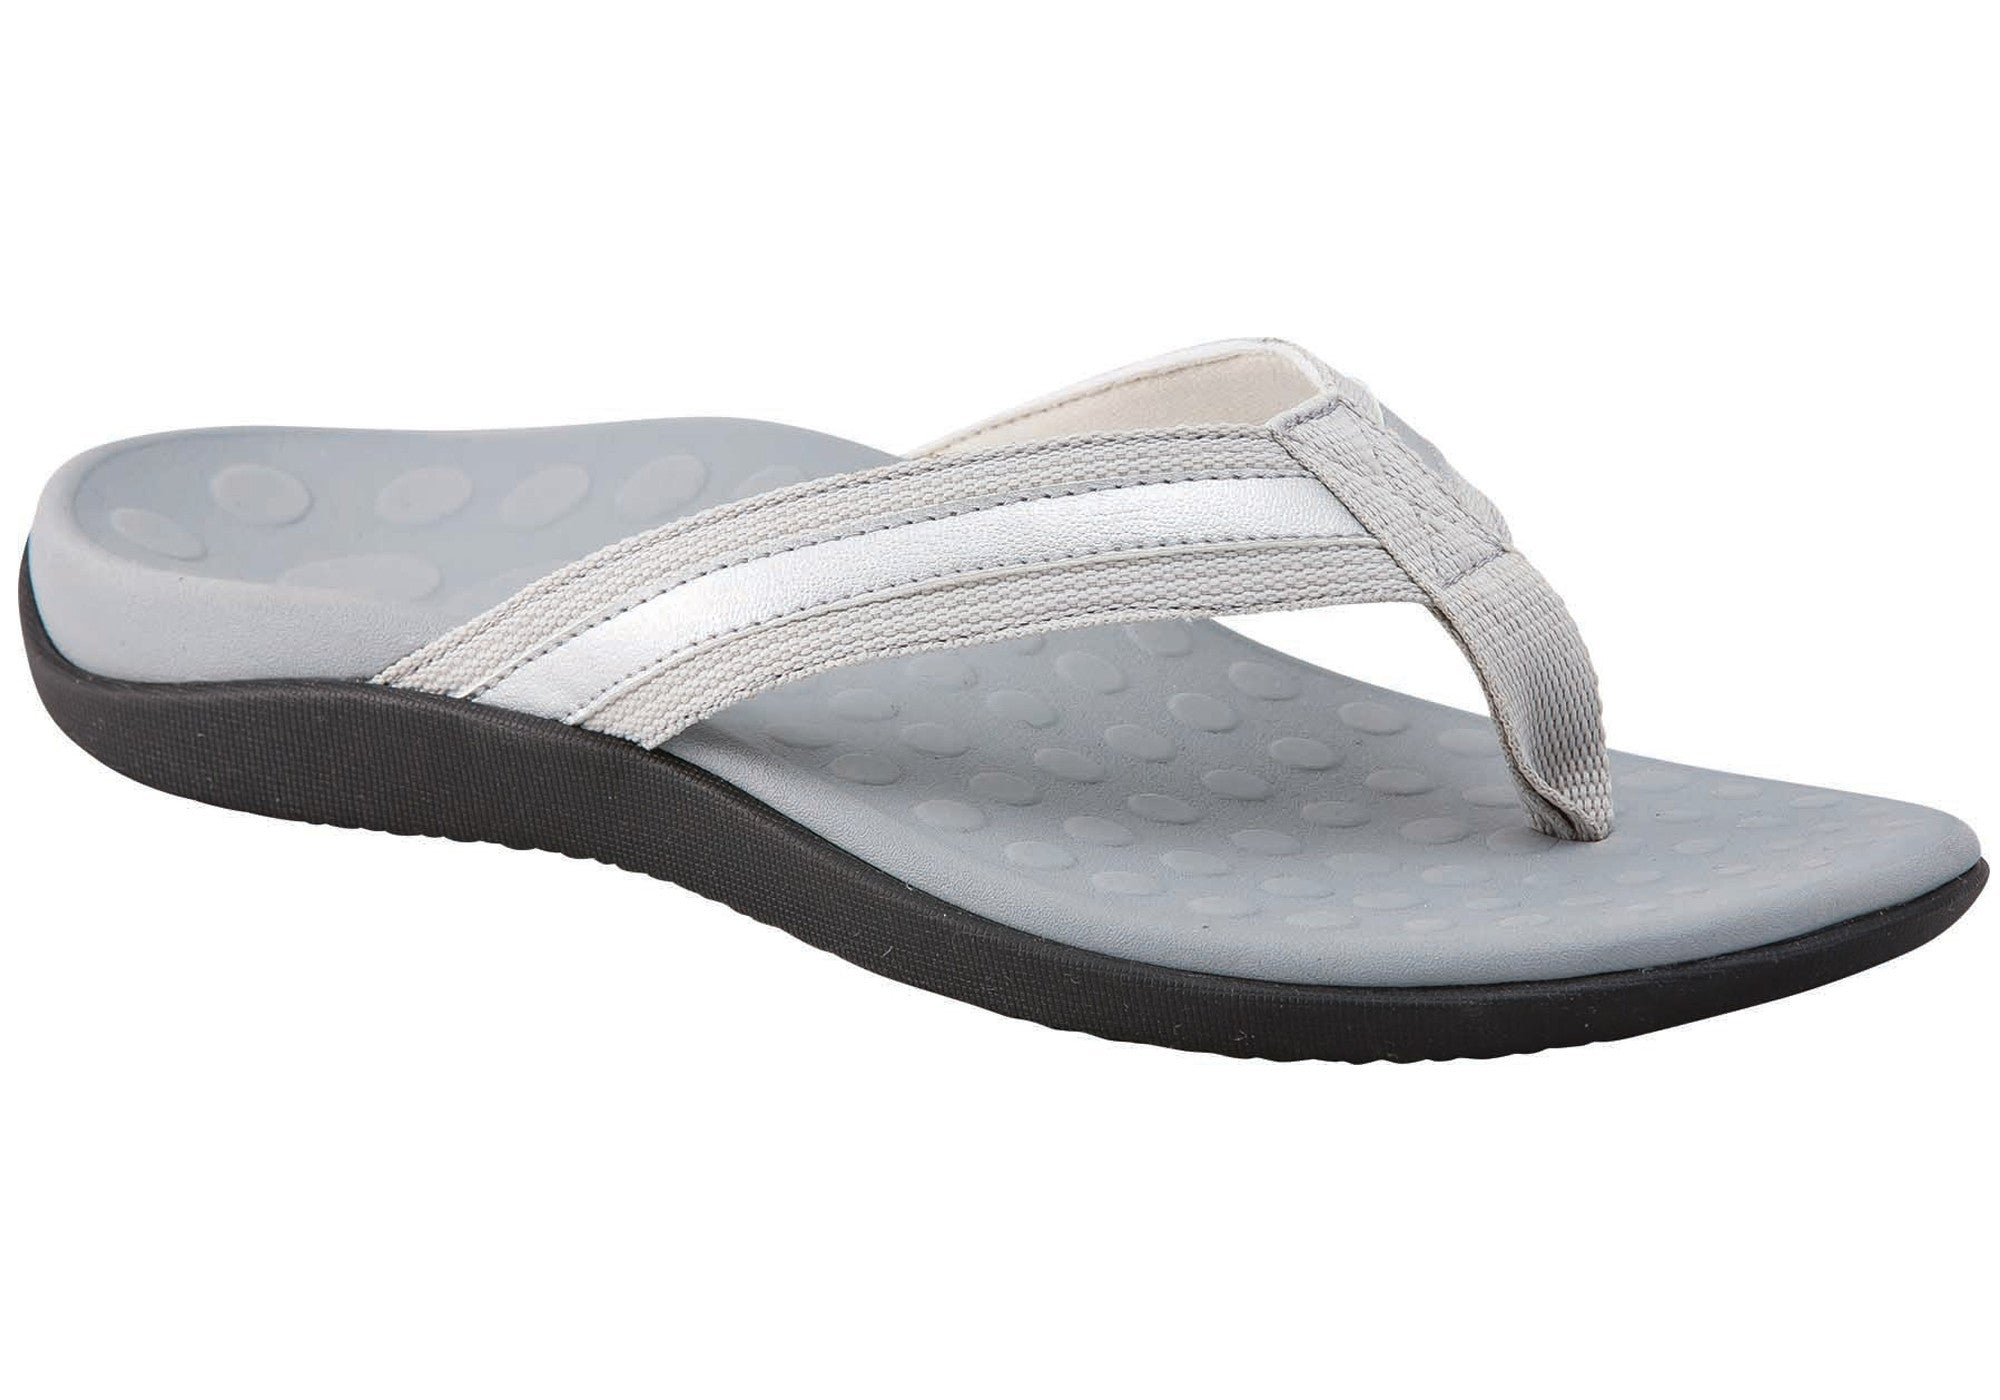 7a51b775206 Scholl Orthaheel Tide Womens Comfort Thongs